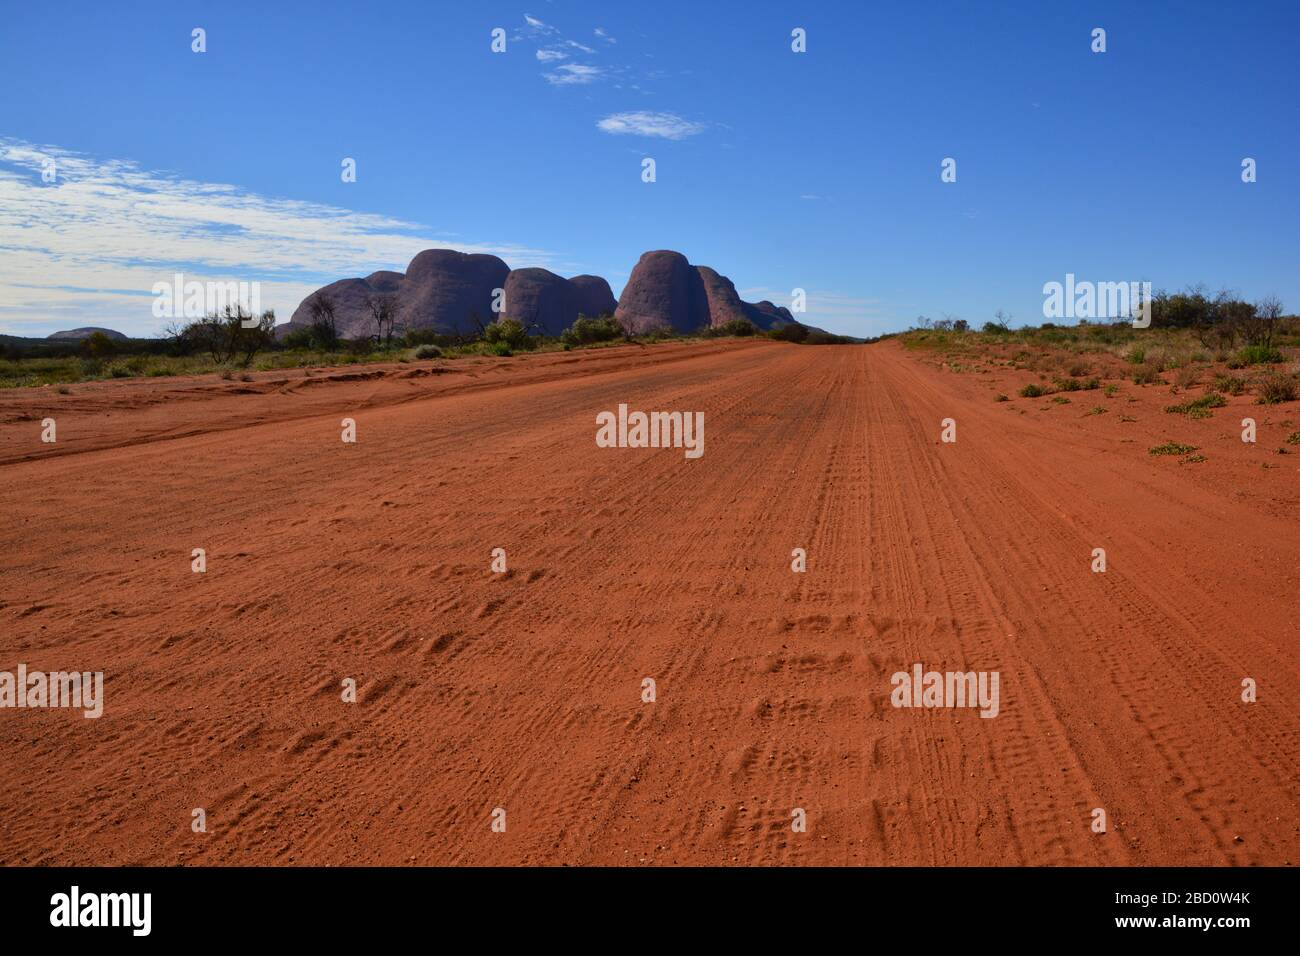 Northern Territory, Australia: low angle wide view of red dust road in the outback with the rock formation of Kata Tjuta or Olgas in the bac Stock Photo